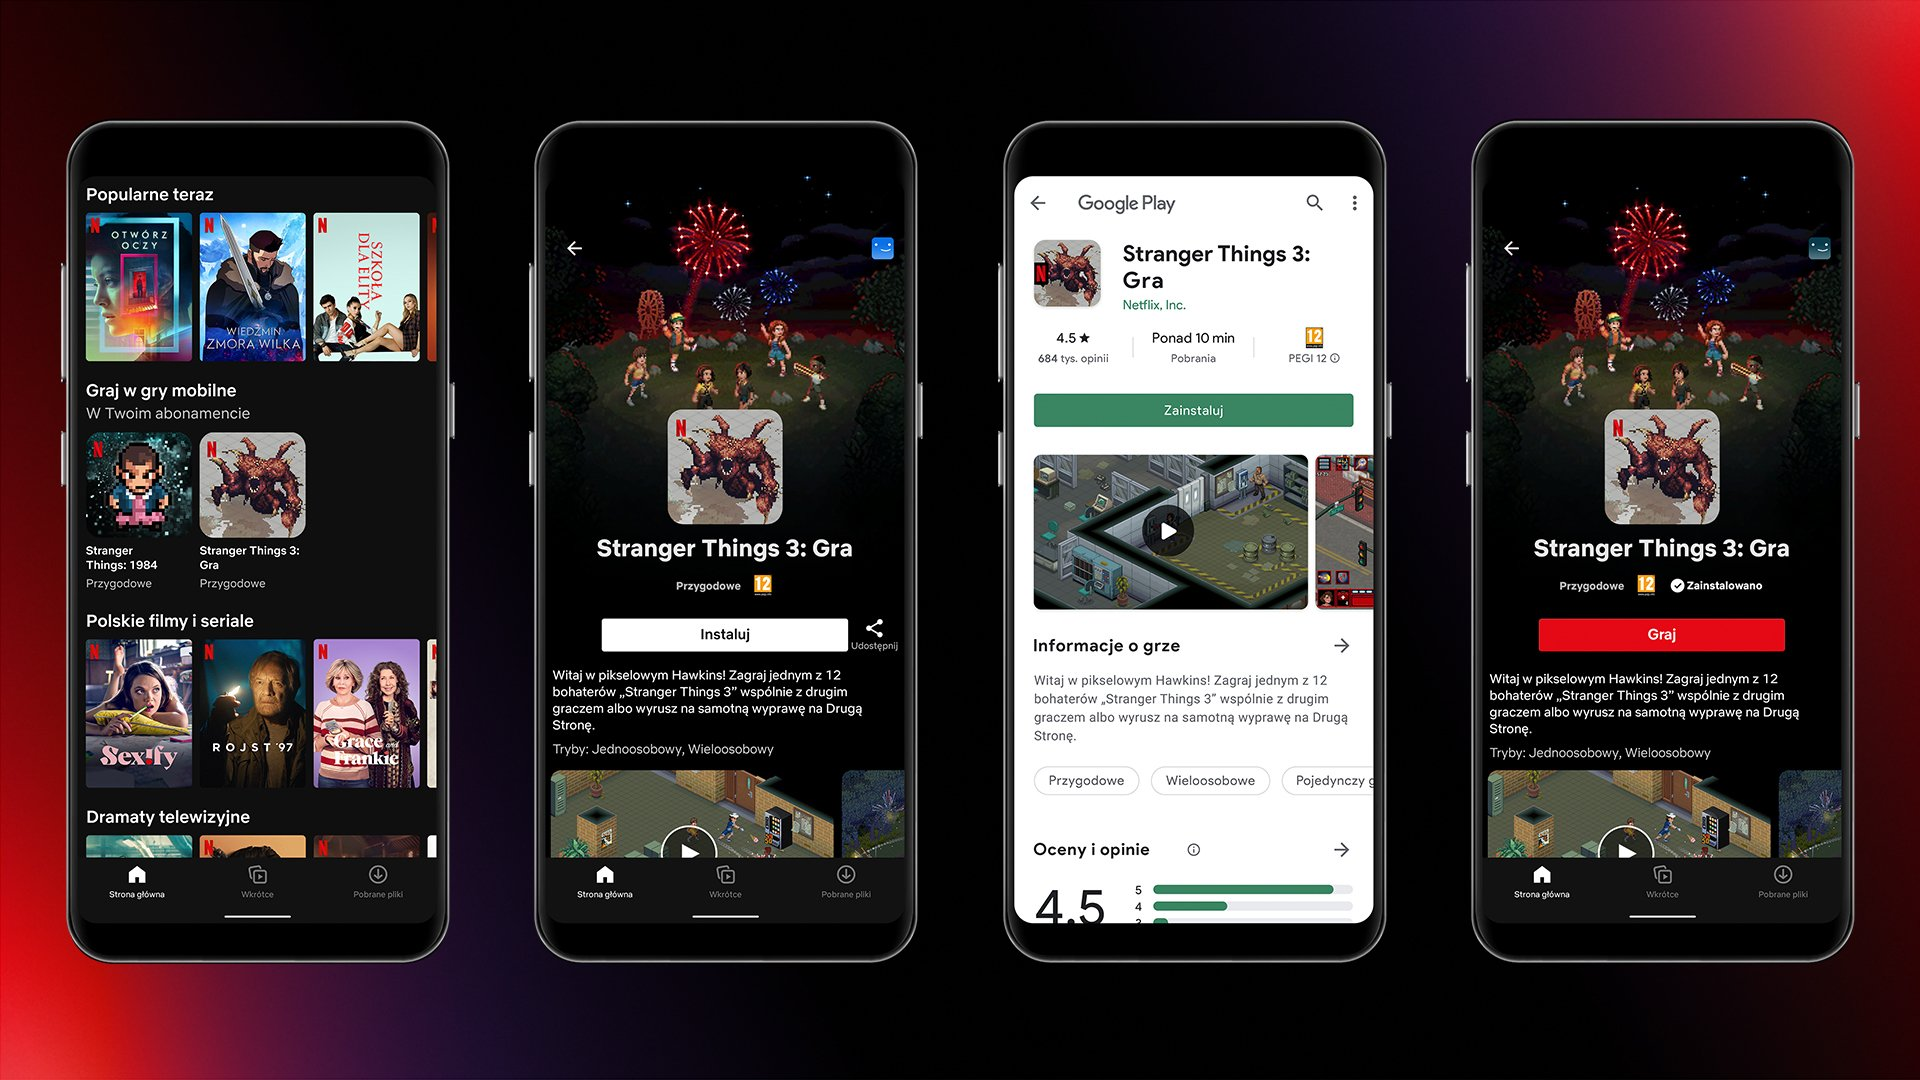 Four iPhone screenshots showing Netflix gaming with Stranger Things titles